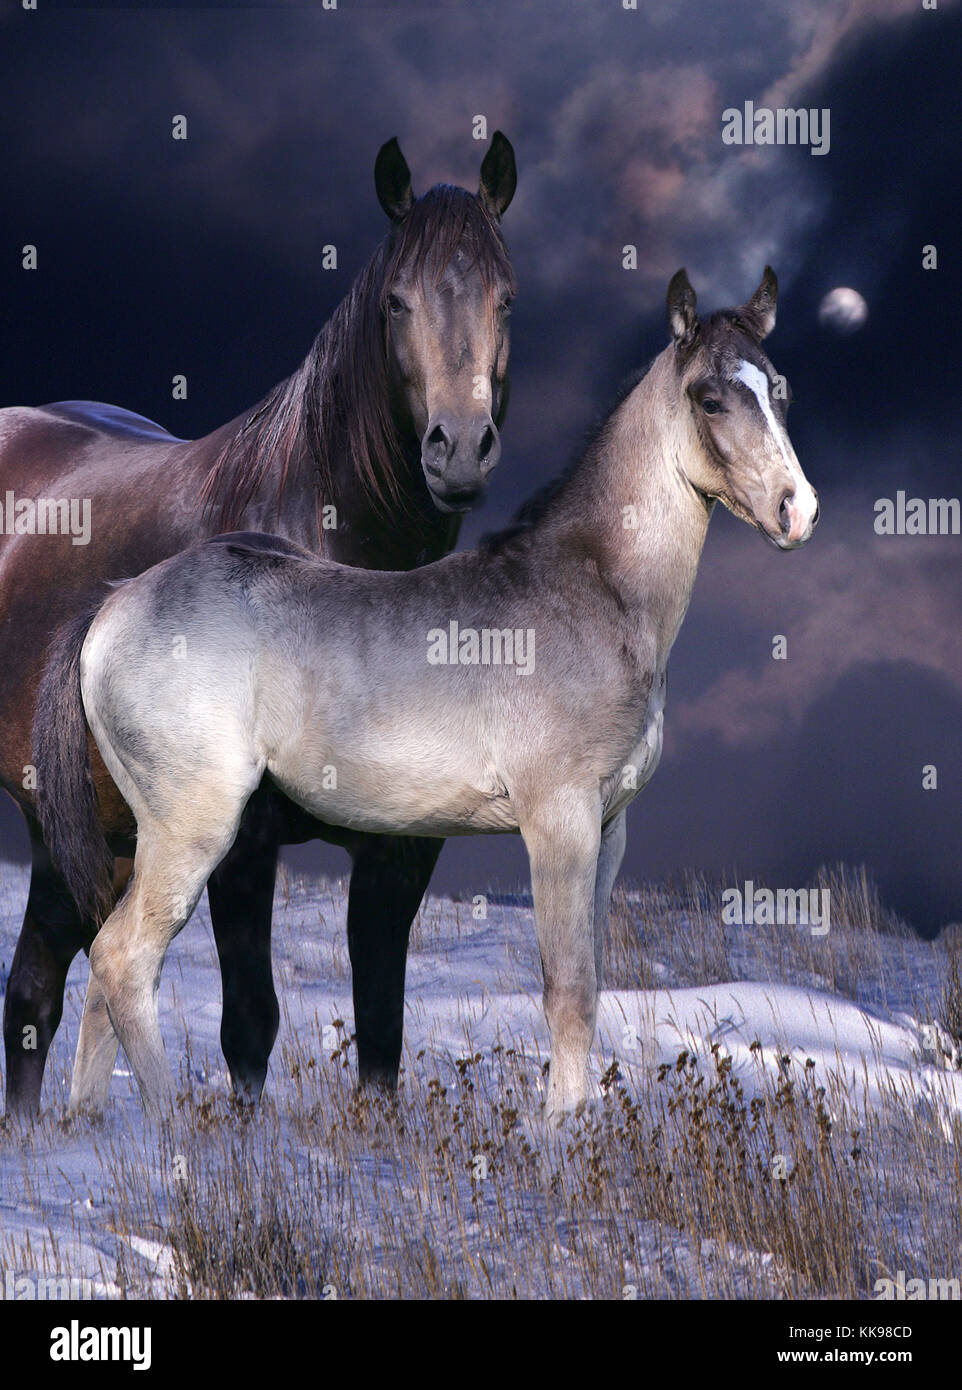 A beautiful mare and her foal stand in a snowy landscape with a purple sky behind. - Stock Image